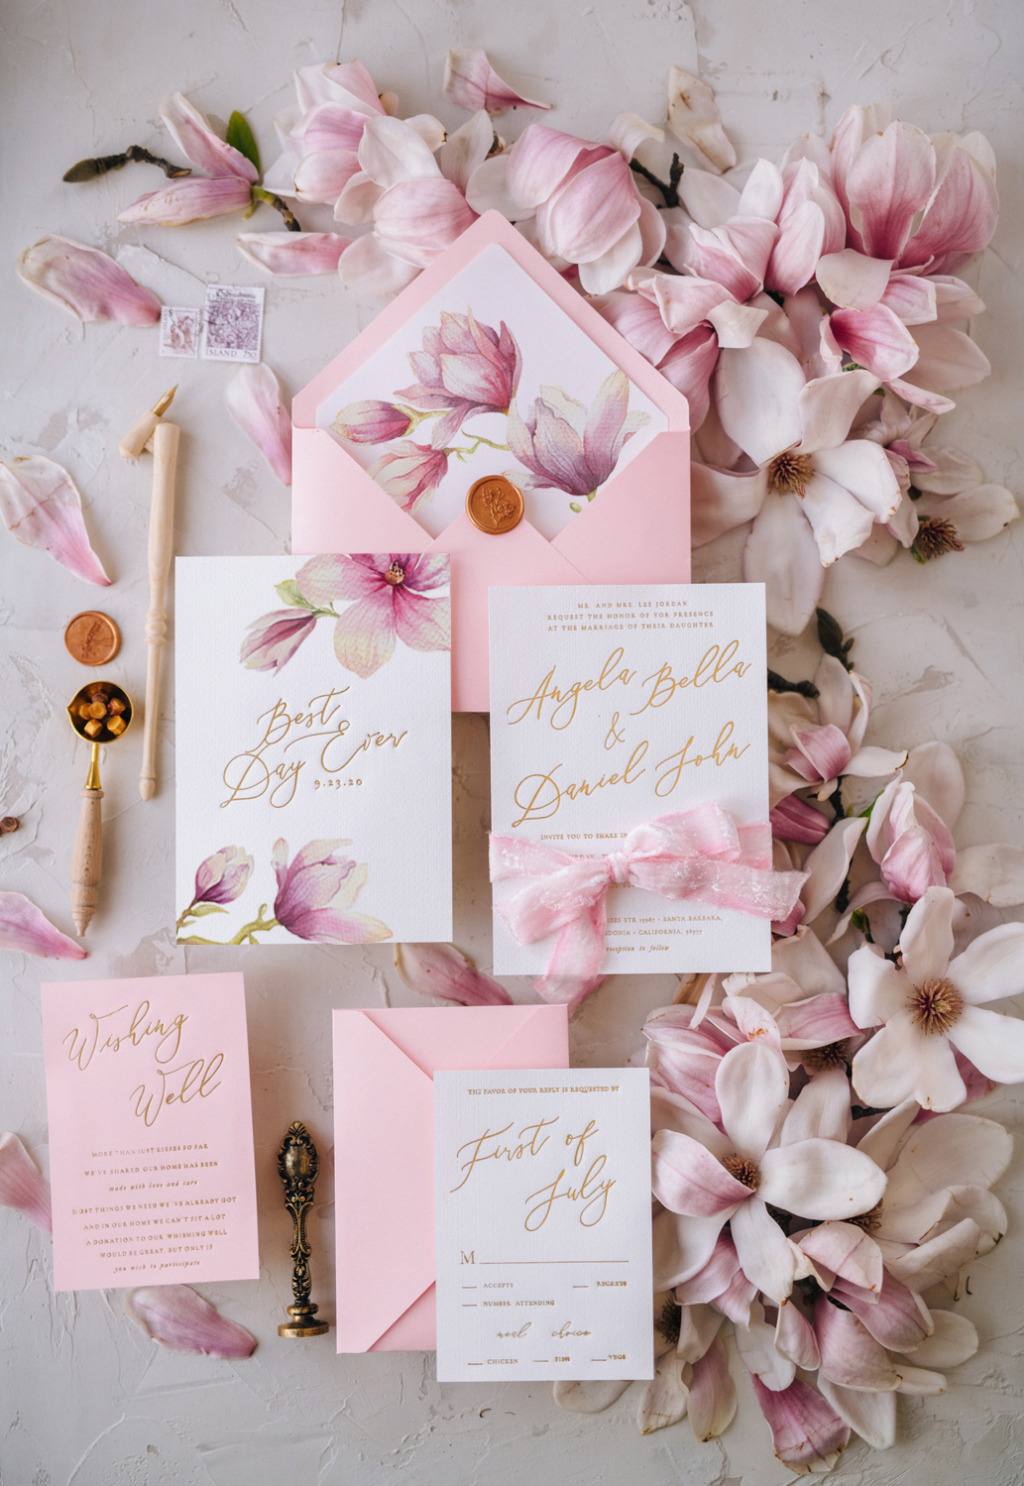 Blossom wedding invitation for your Best Day Ever!